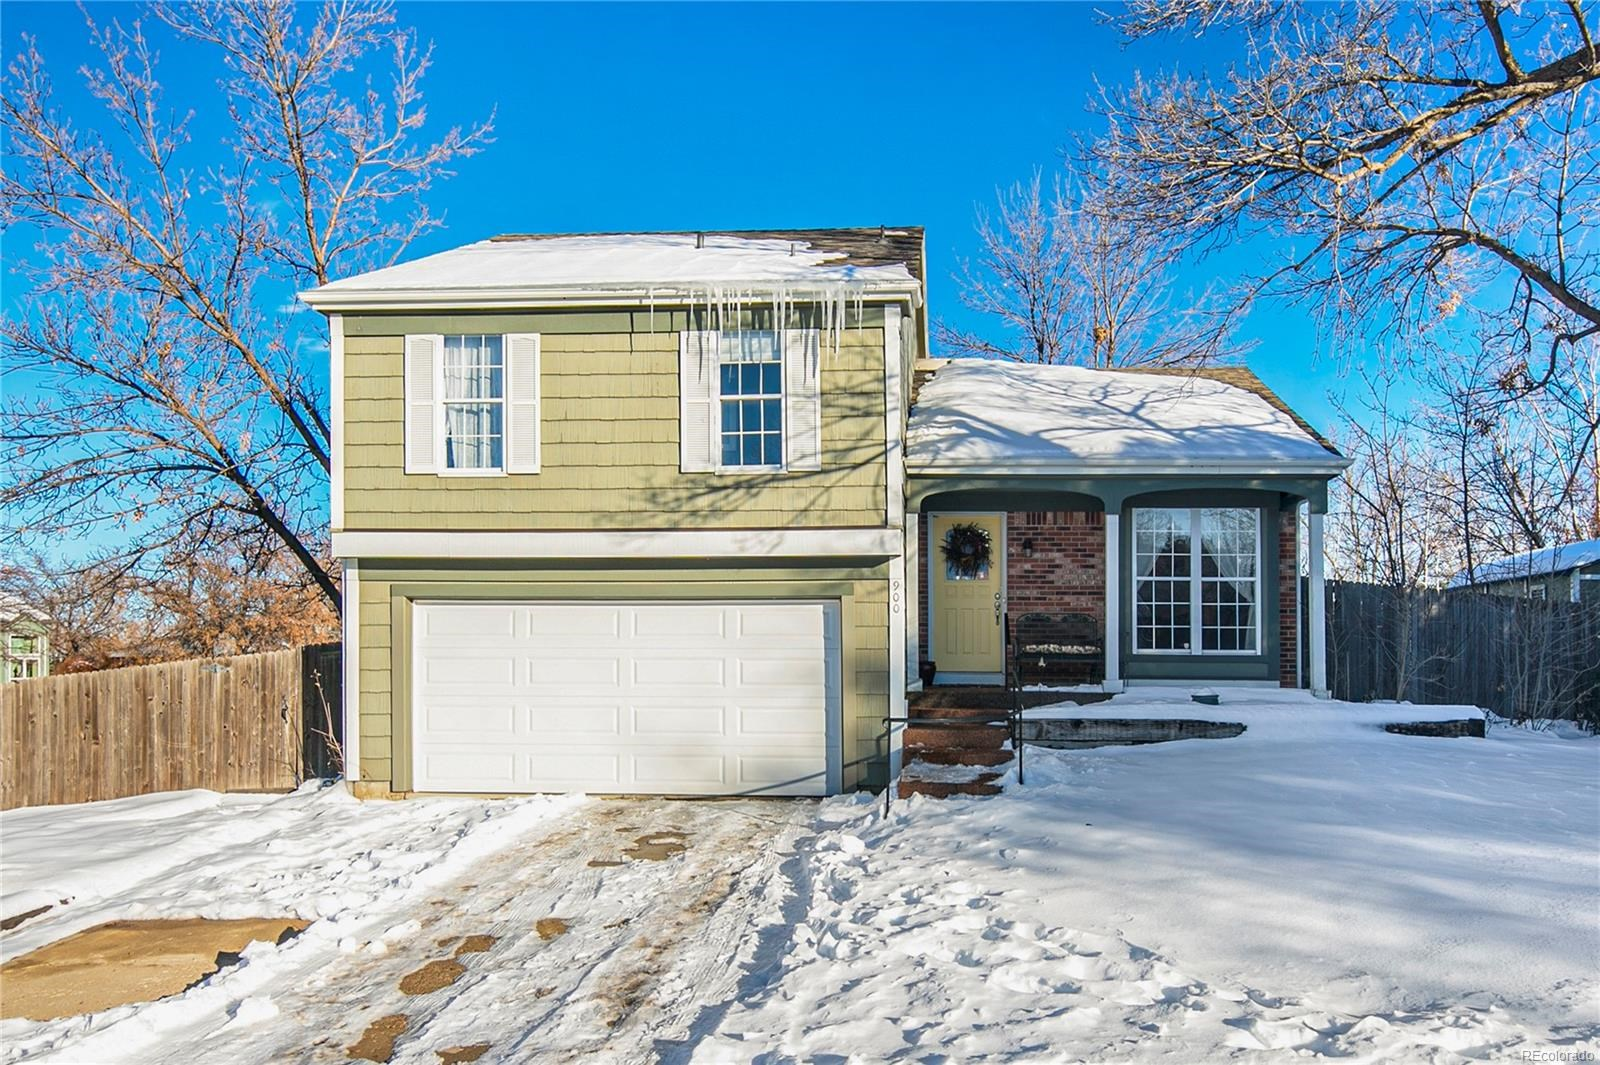 MLS# 2607804 - 1 - 900 Clover Circle, Lafayette, CO 80026